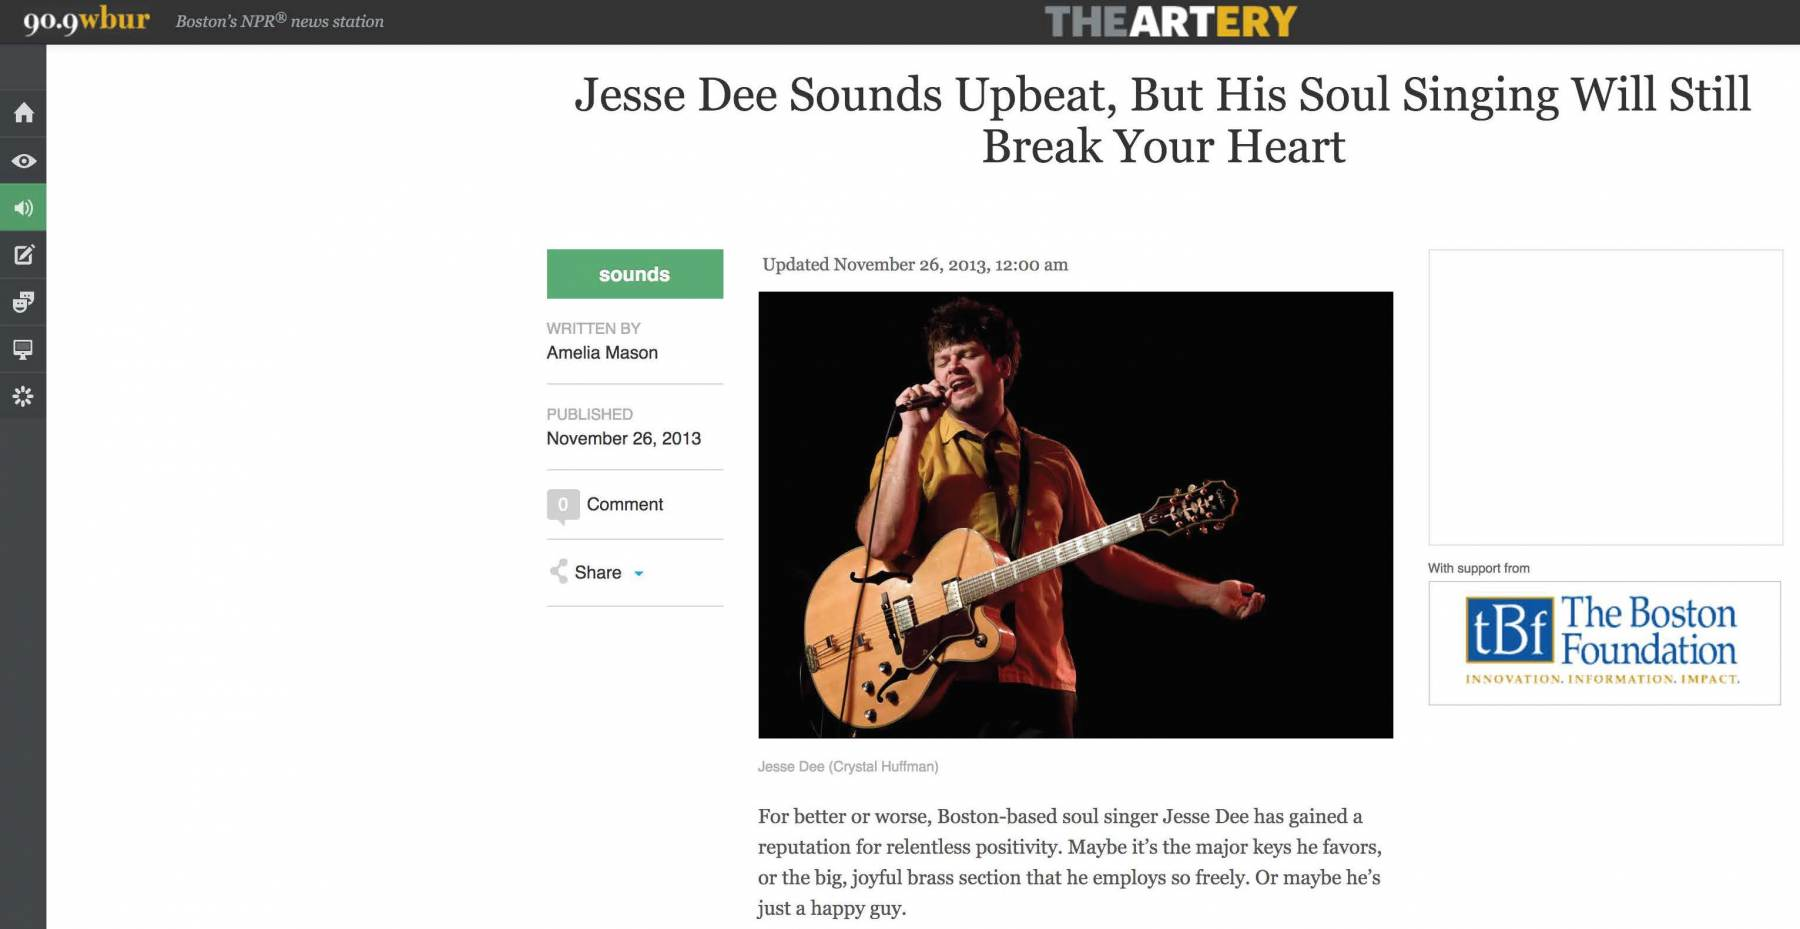 Jesse-Dee-NPR-Boston